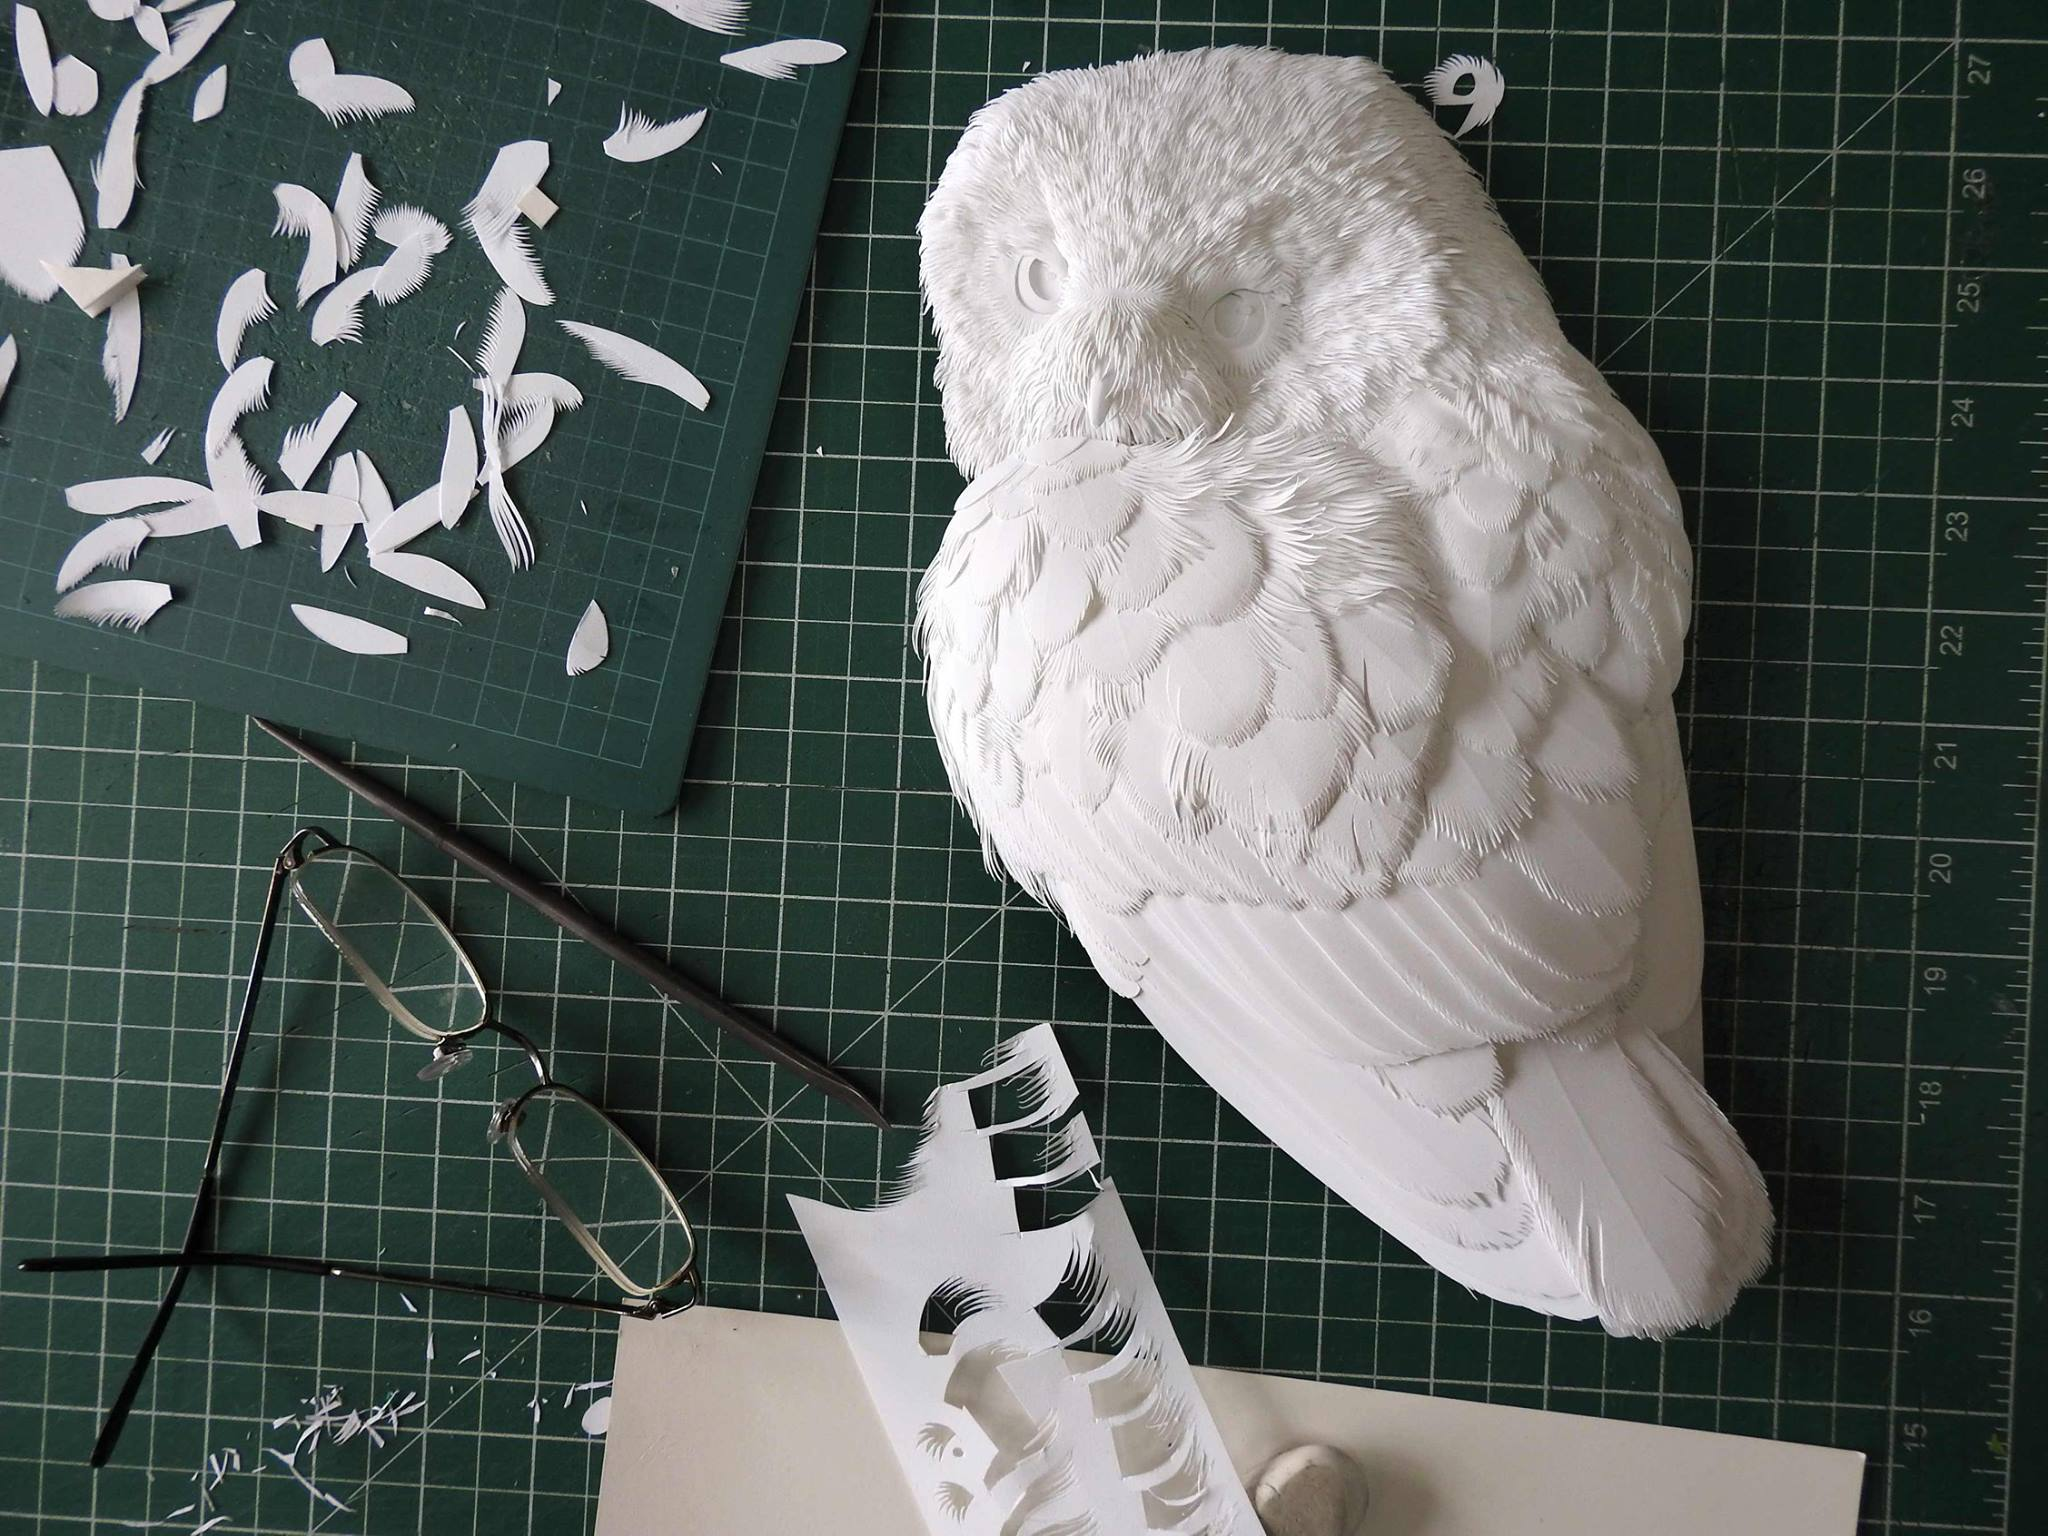 Paper Bird Sculpture Haut Relief Portraits Of Animals Come Alive In Detailed